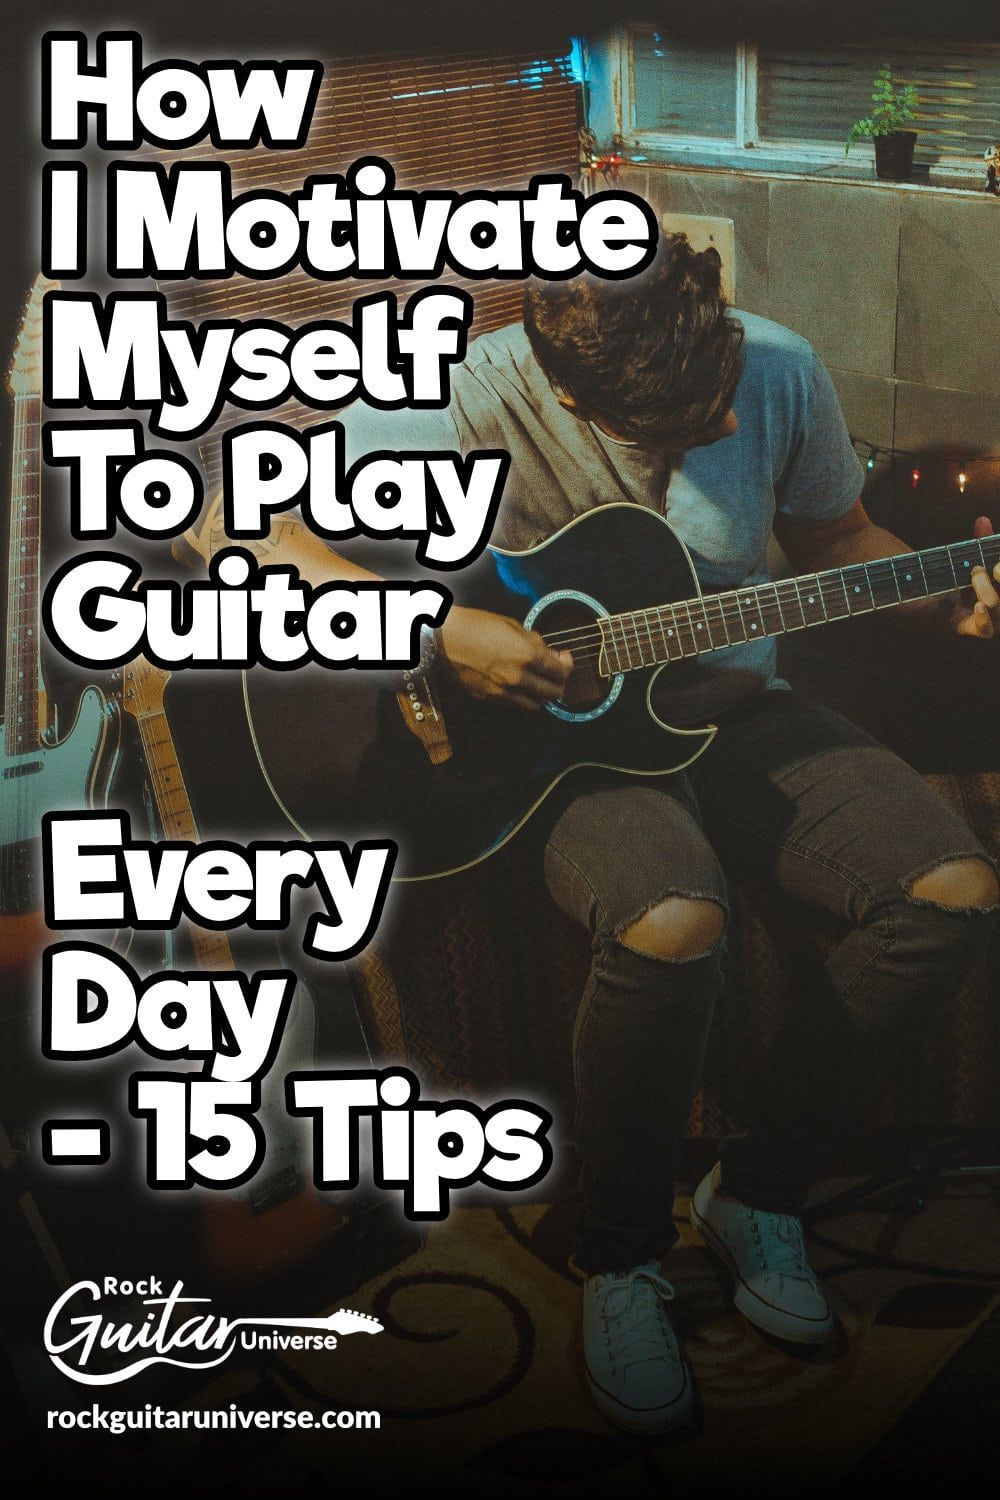 How I Motivate Myself To Play Guitar Every Day 15 Tips